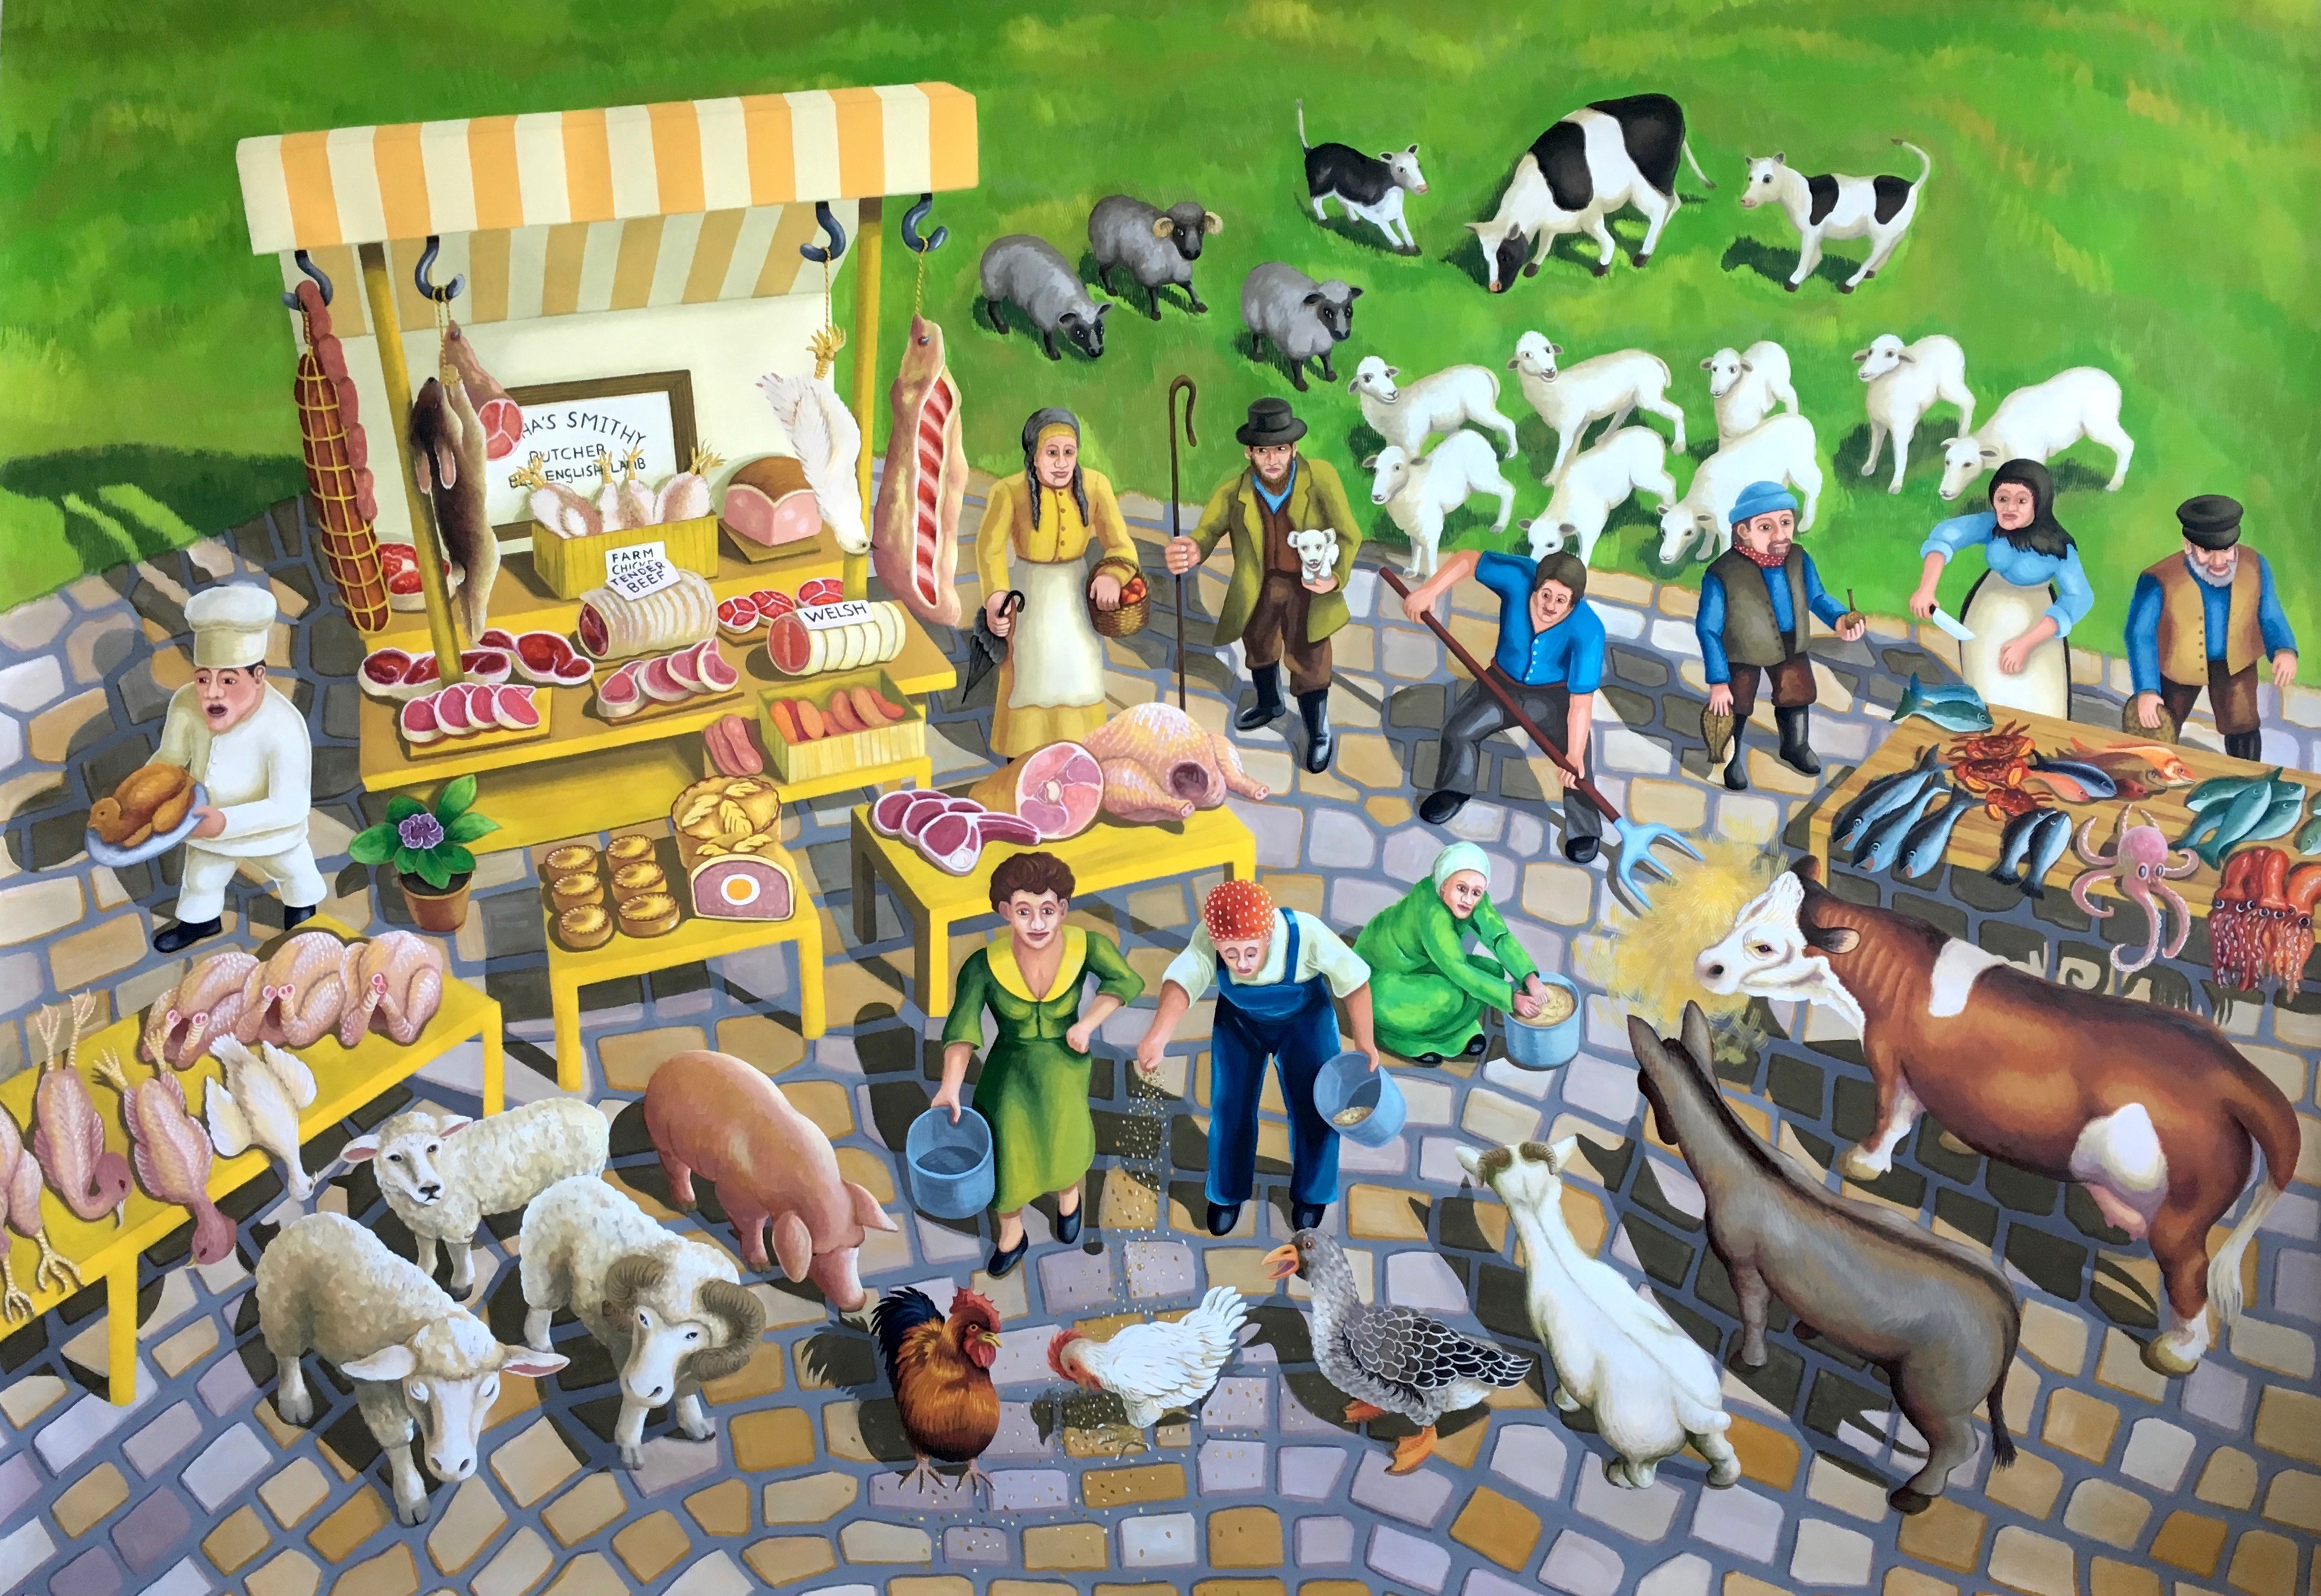 2) Market Day. 2017, 140 x 200 cm, gouache on paper.